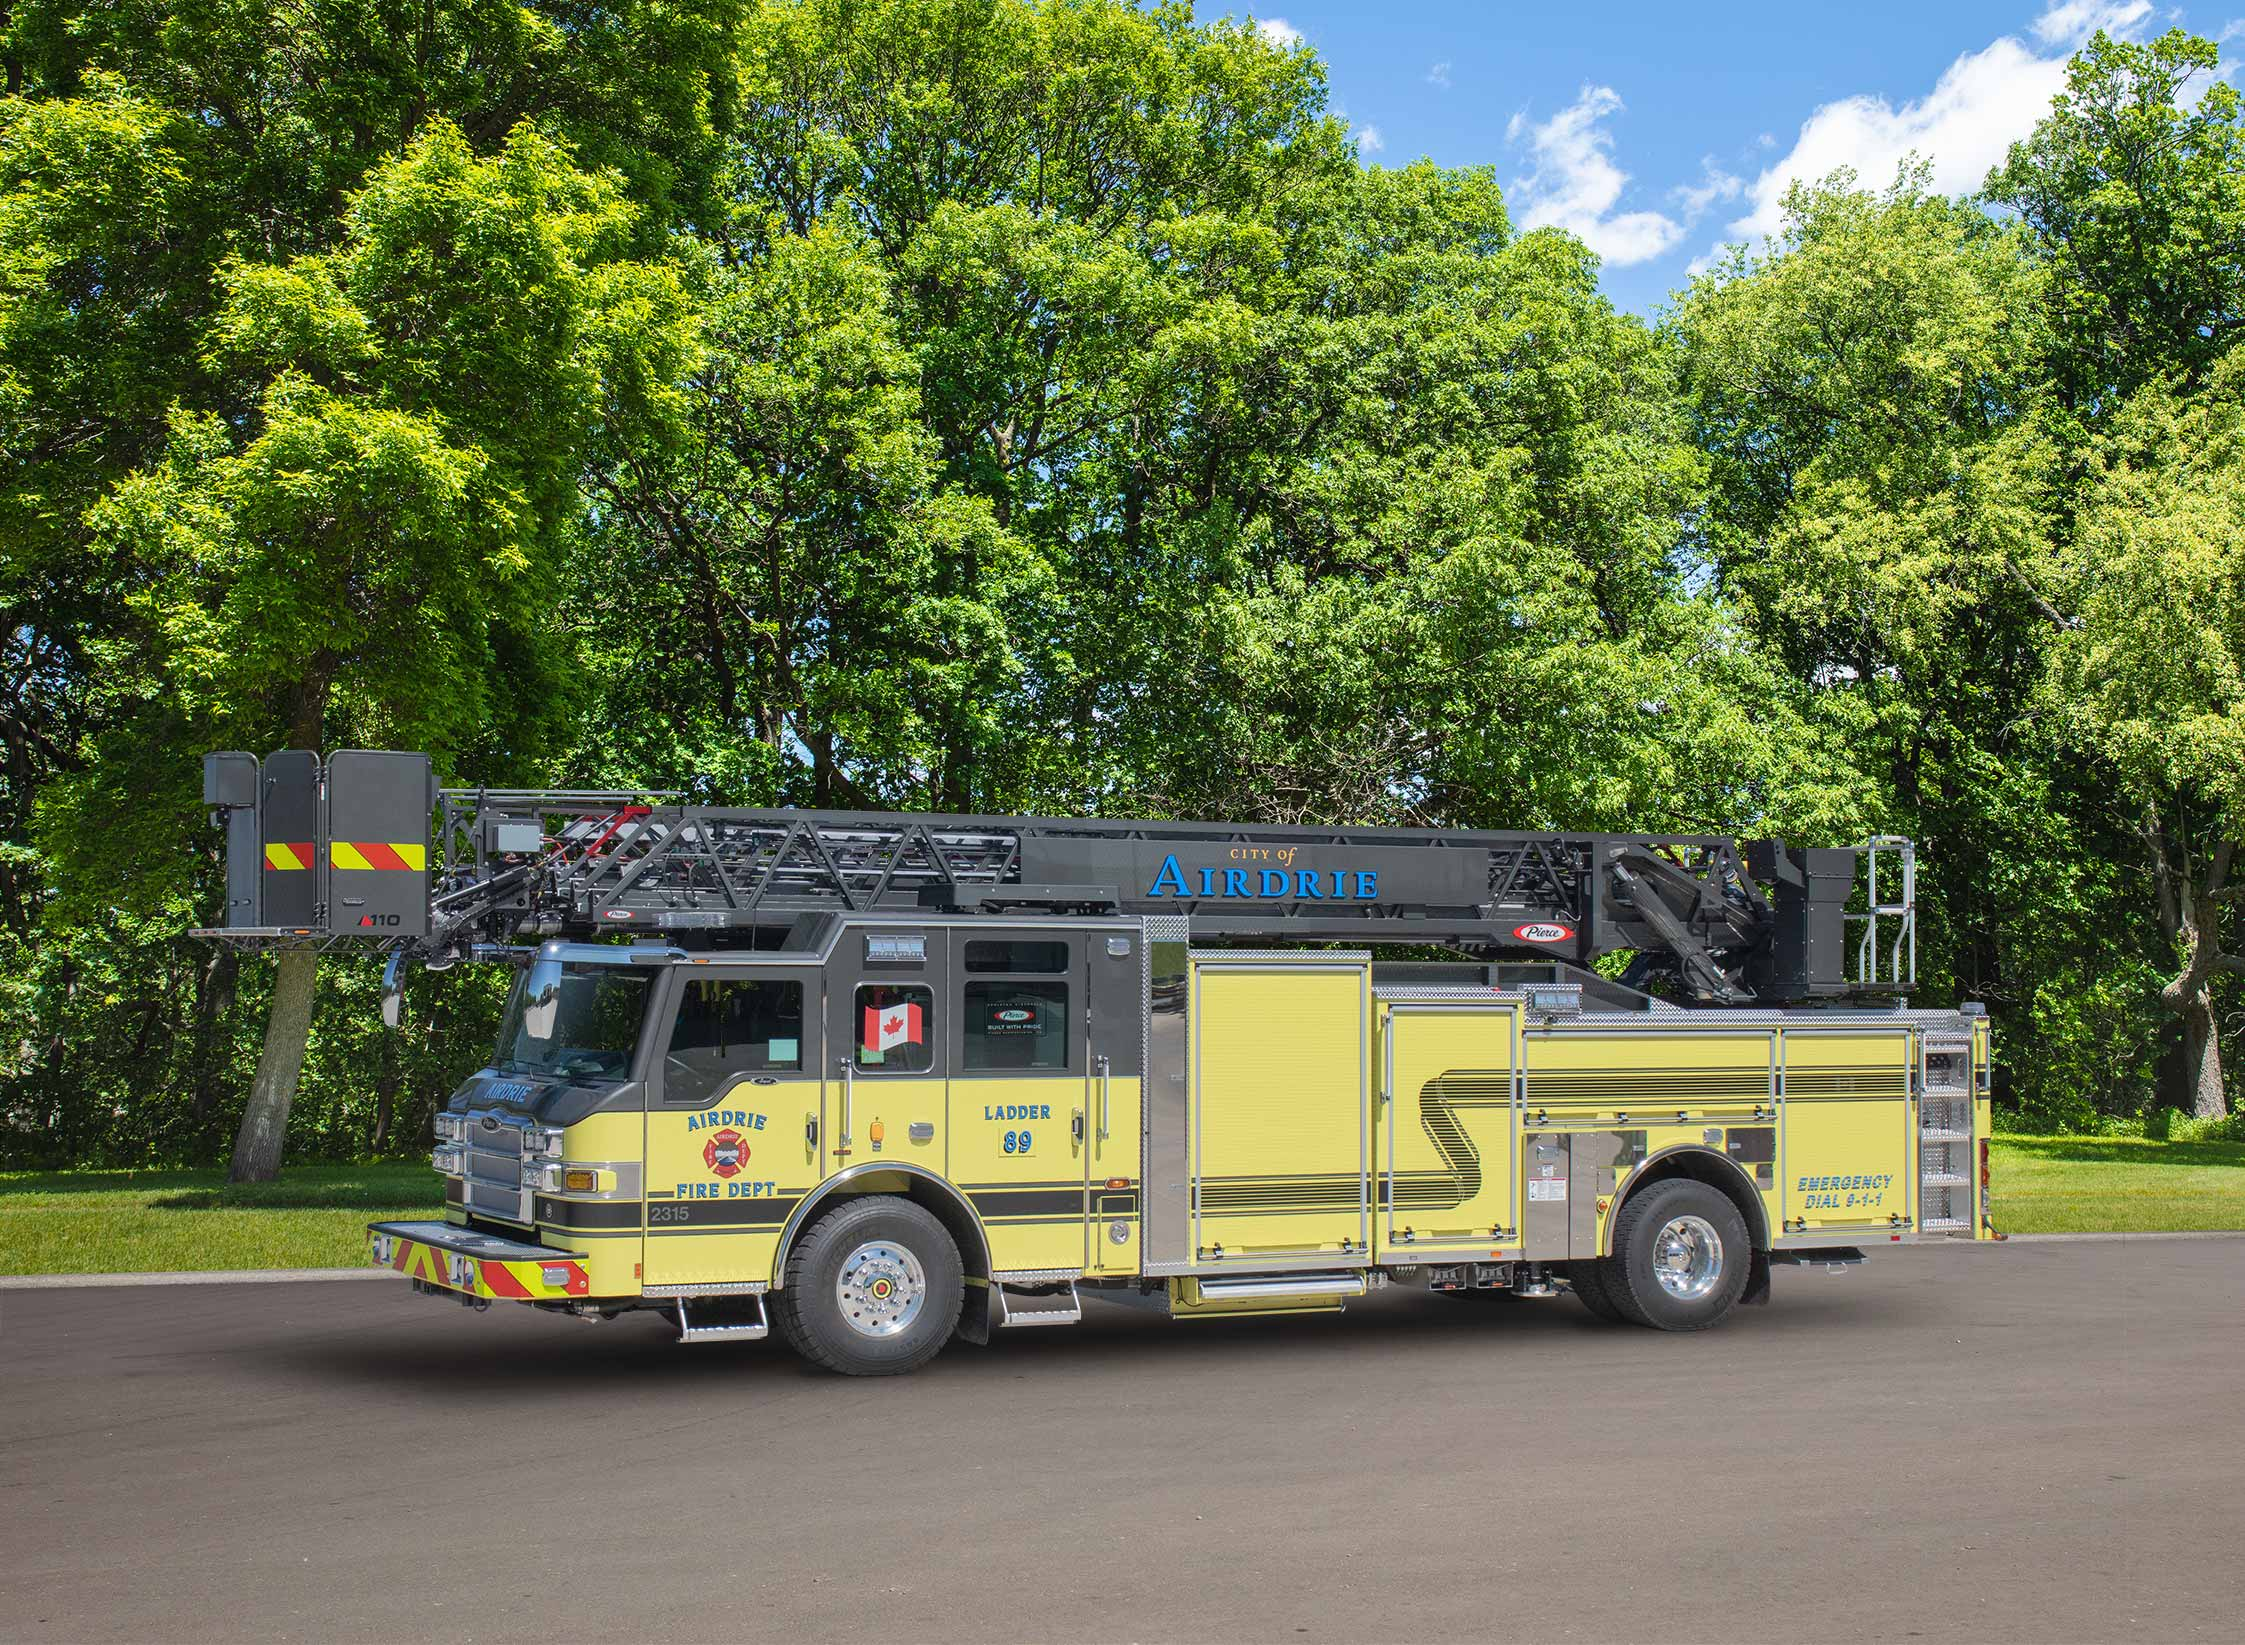 Airdrie Fire Department - Aerial